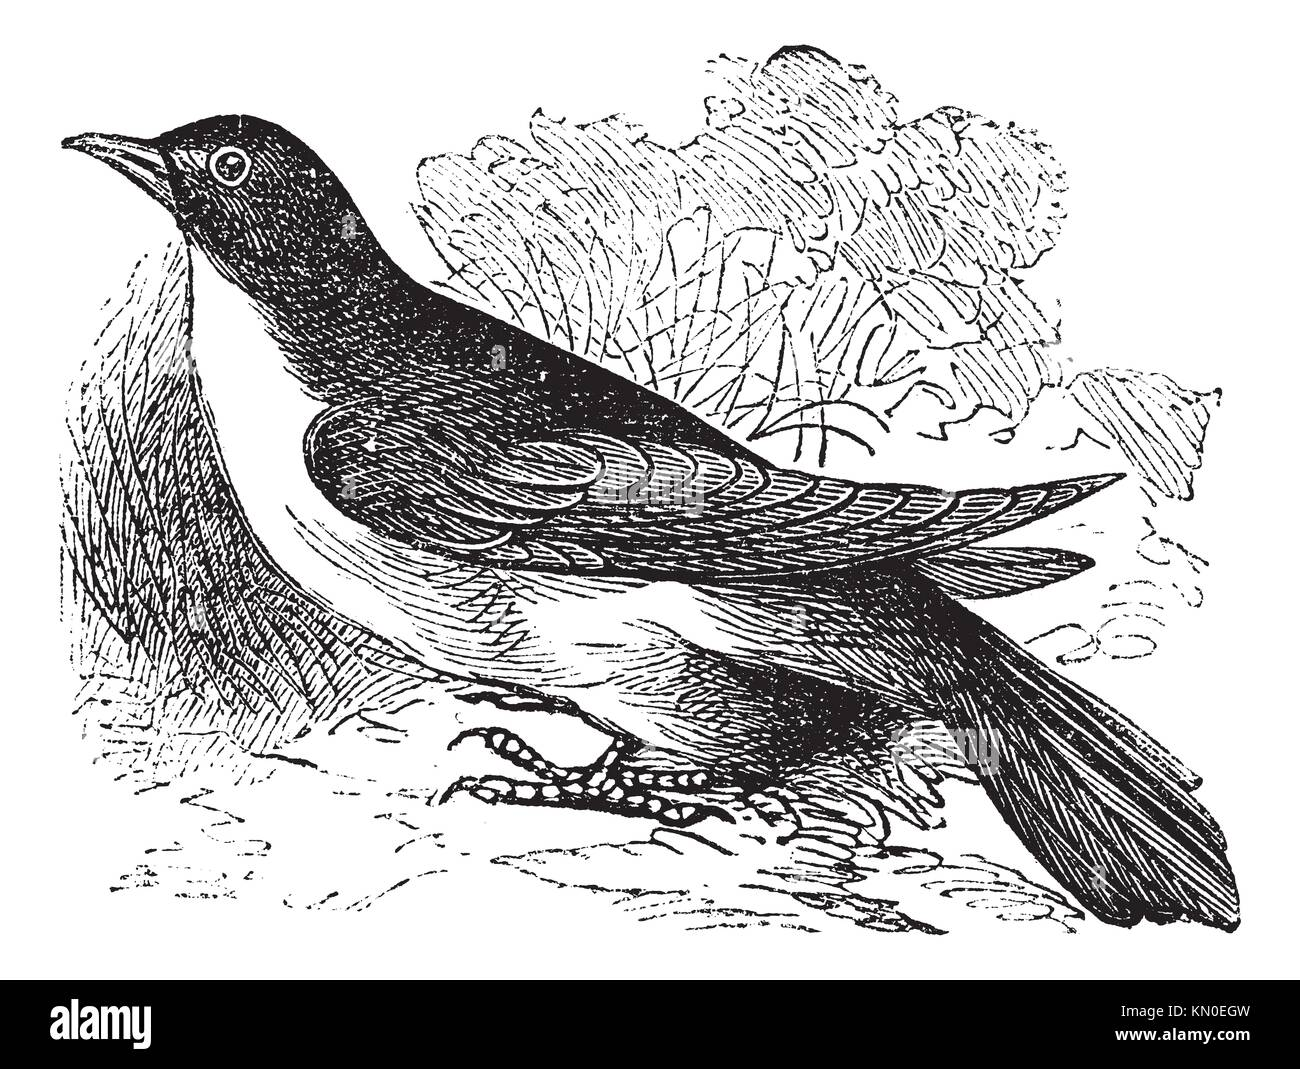 Yellow-billed Cuckoo or Rain Crow or Storm Crow or Coccyzus americanus, vintage engraving  Old engraved illustration - Stock Image